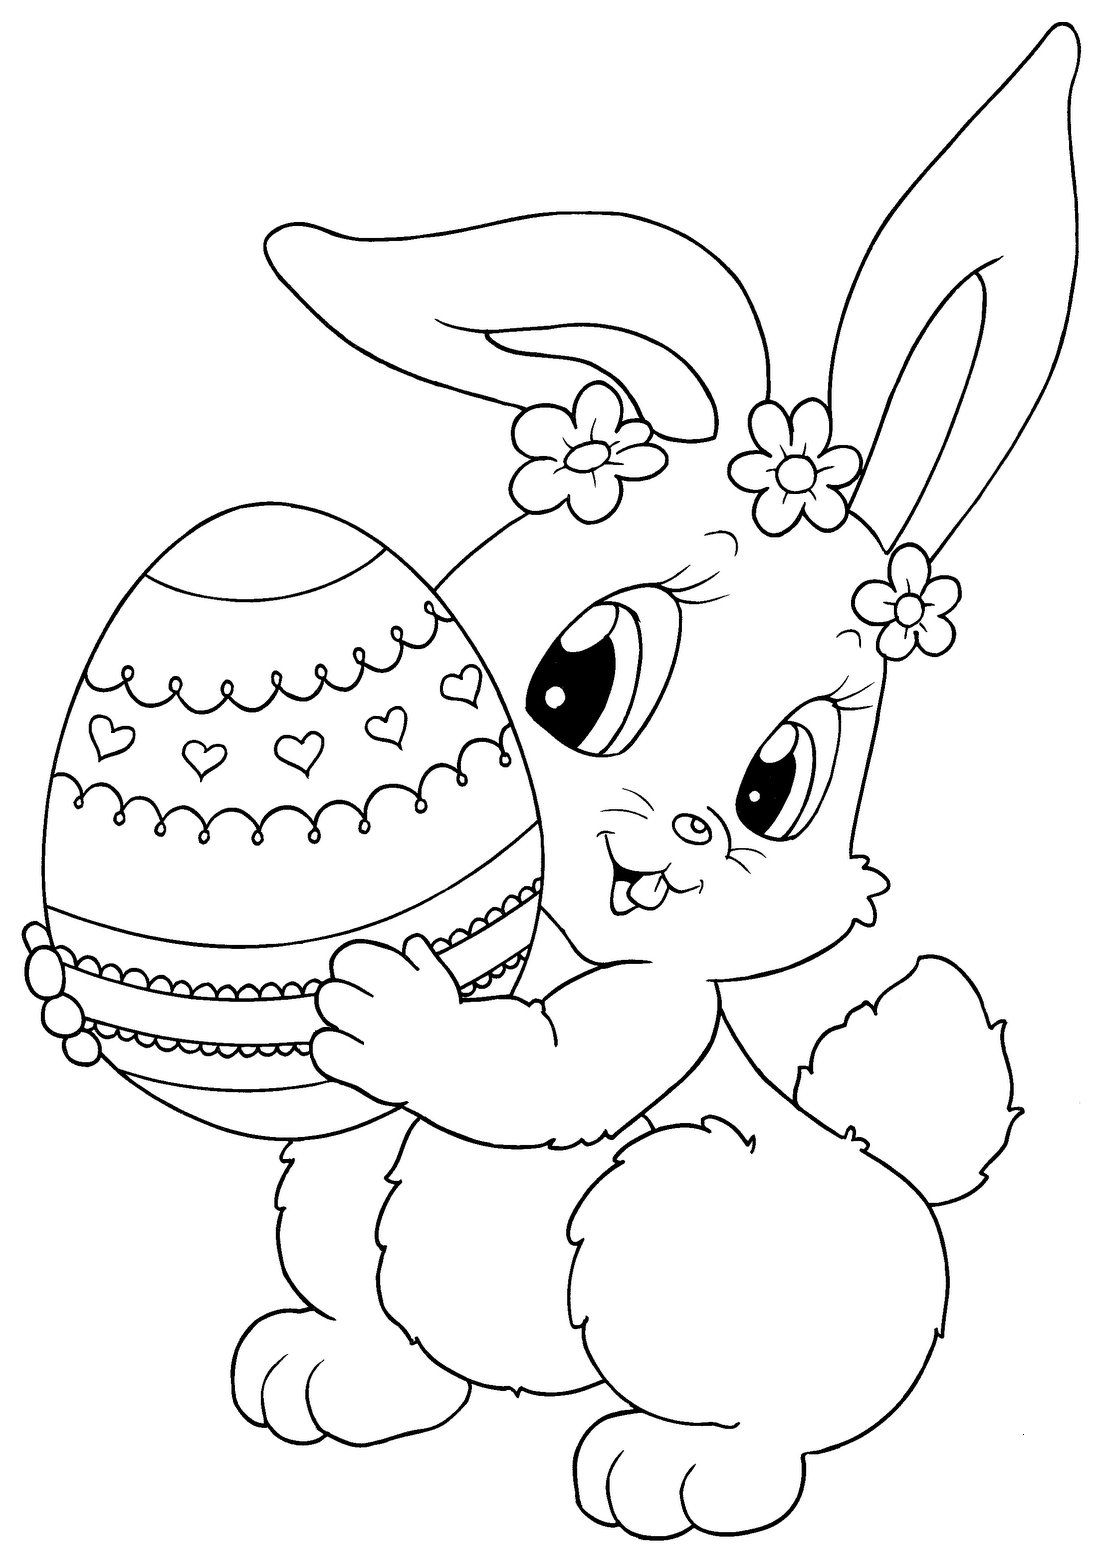 Top 15 Free Printable Easter Bunny Coloring Pages Line Gallery Of Easter Coloring Printable Easter Coloring Pages Coloring Gallery